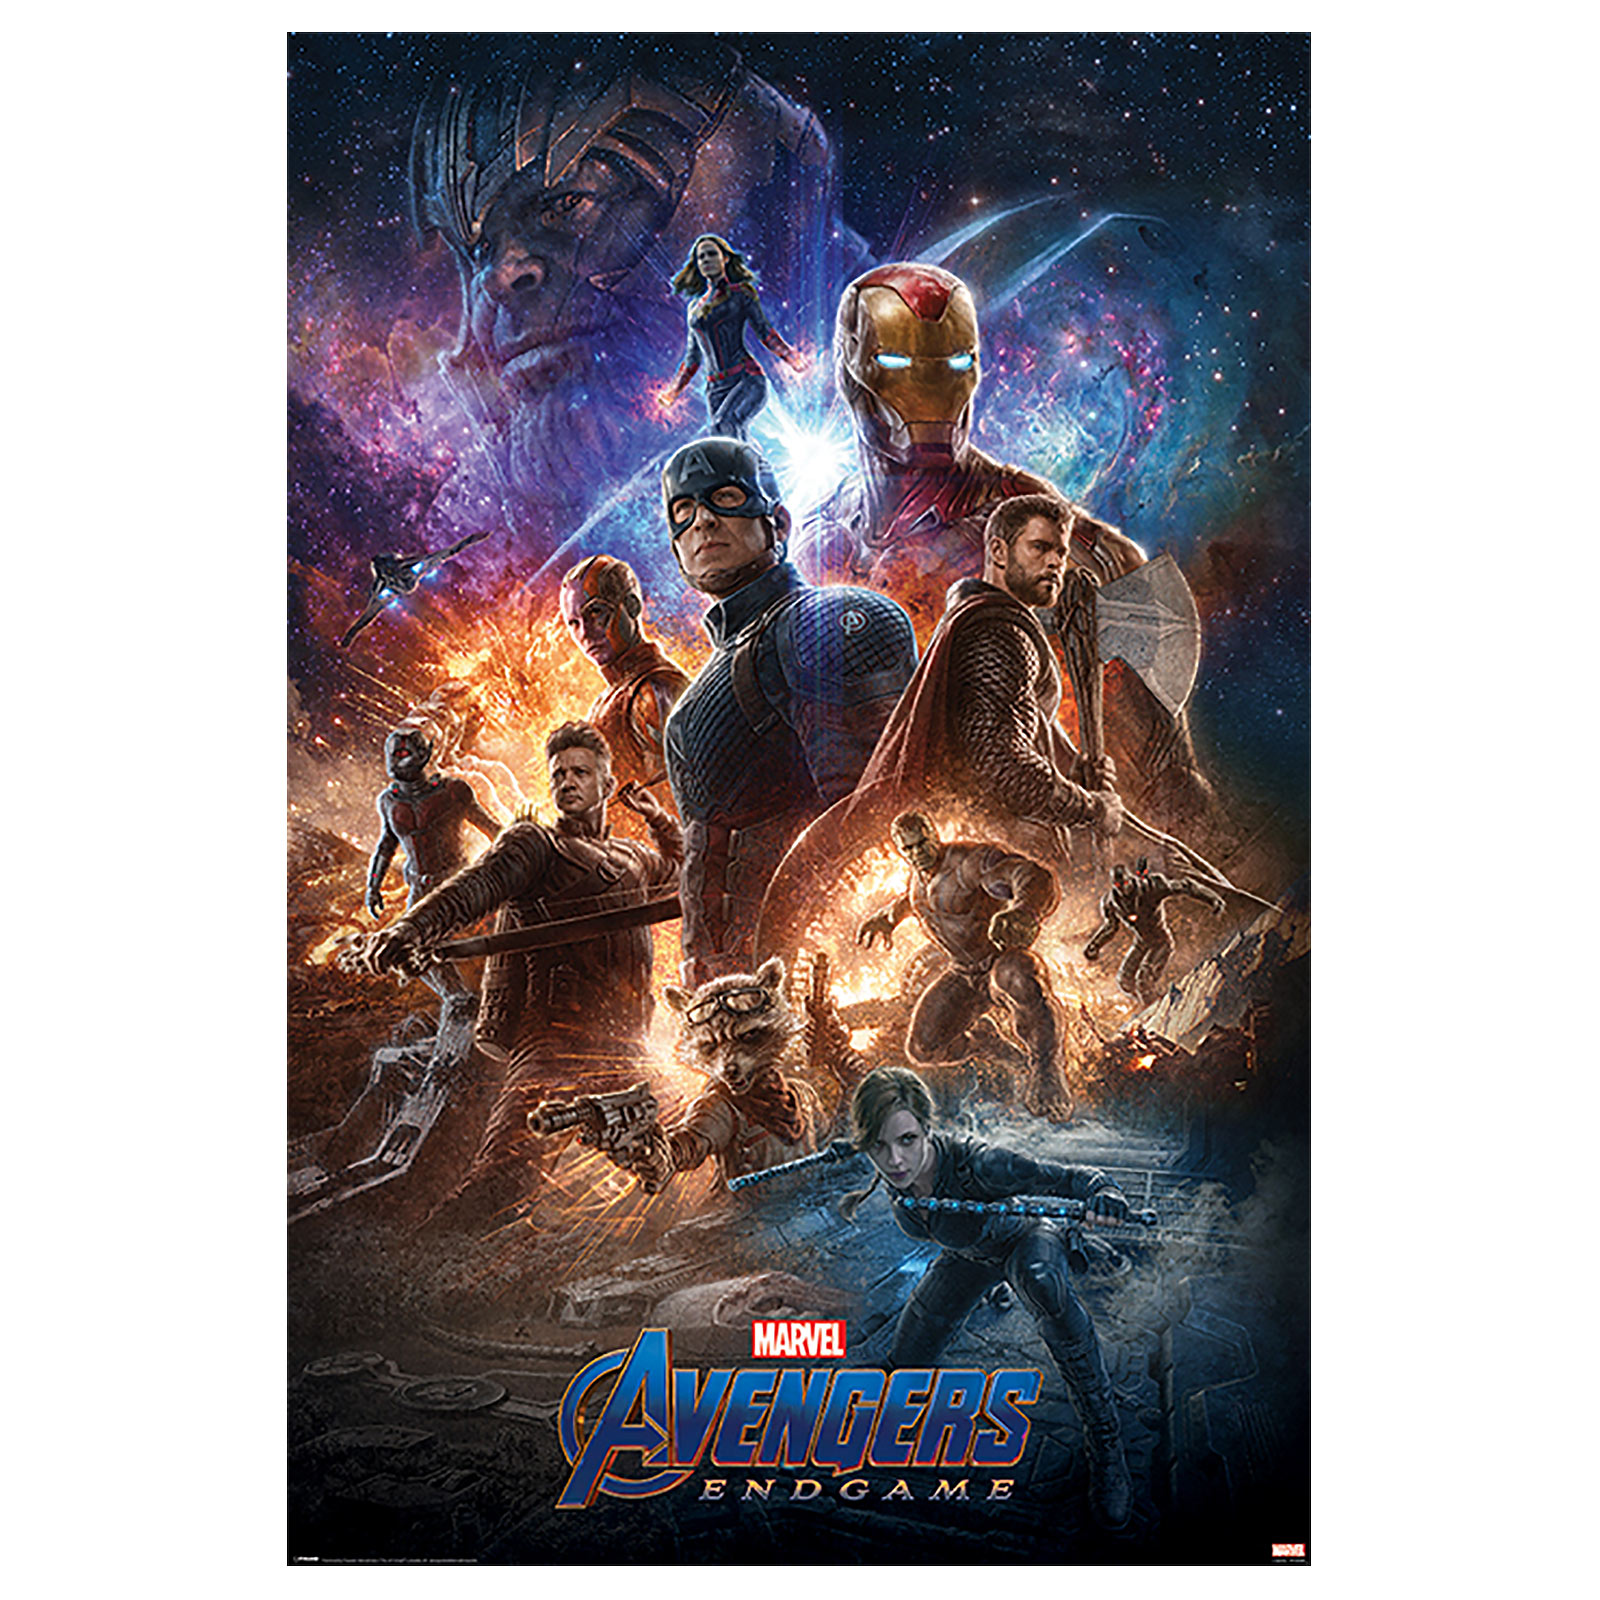 Avengers - Endgame From the Ashes Maxi Poster